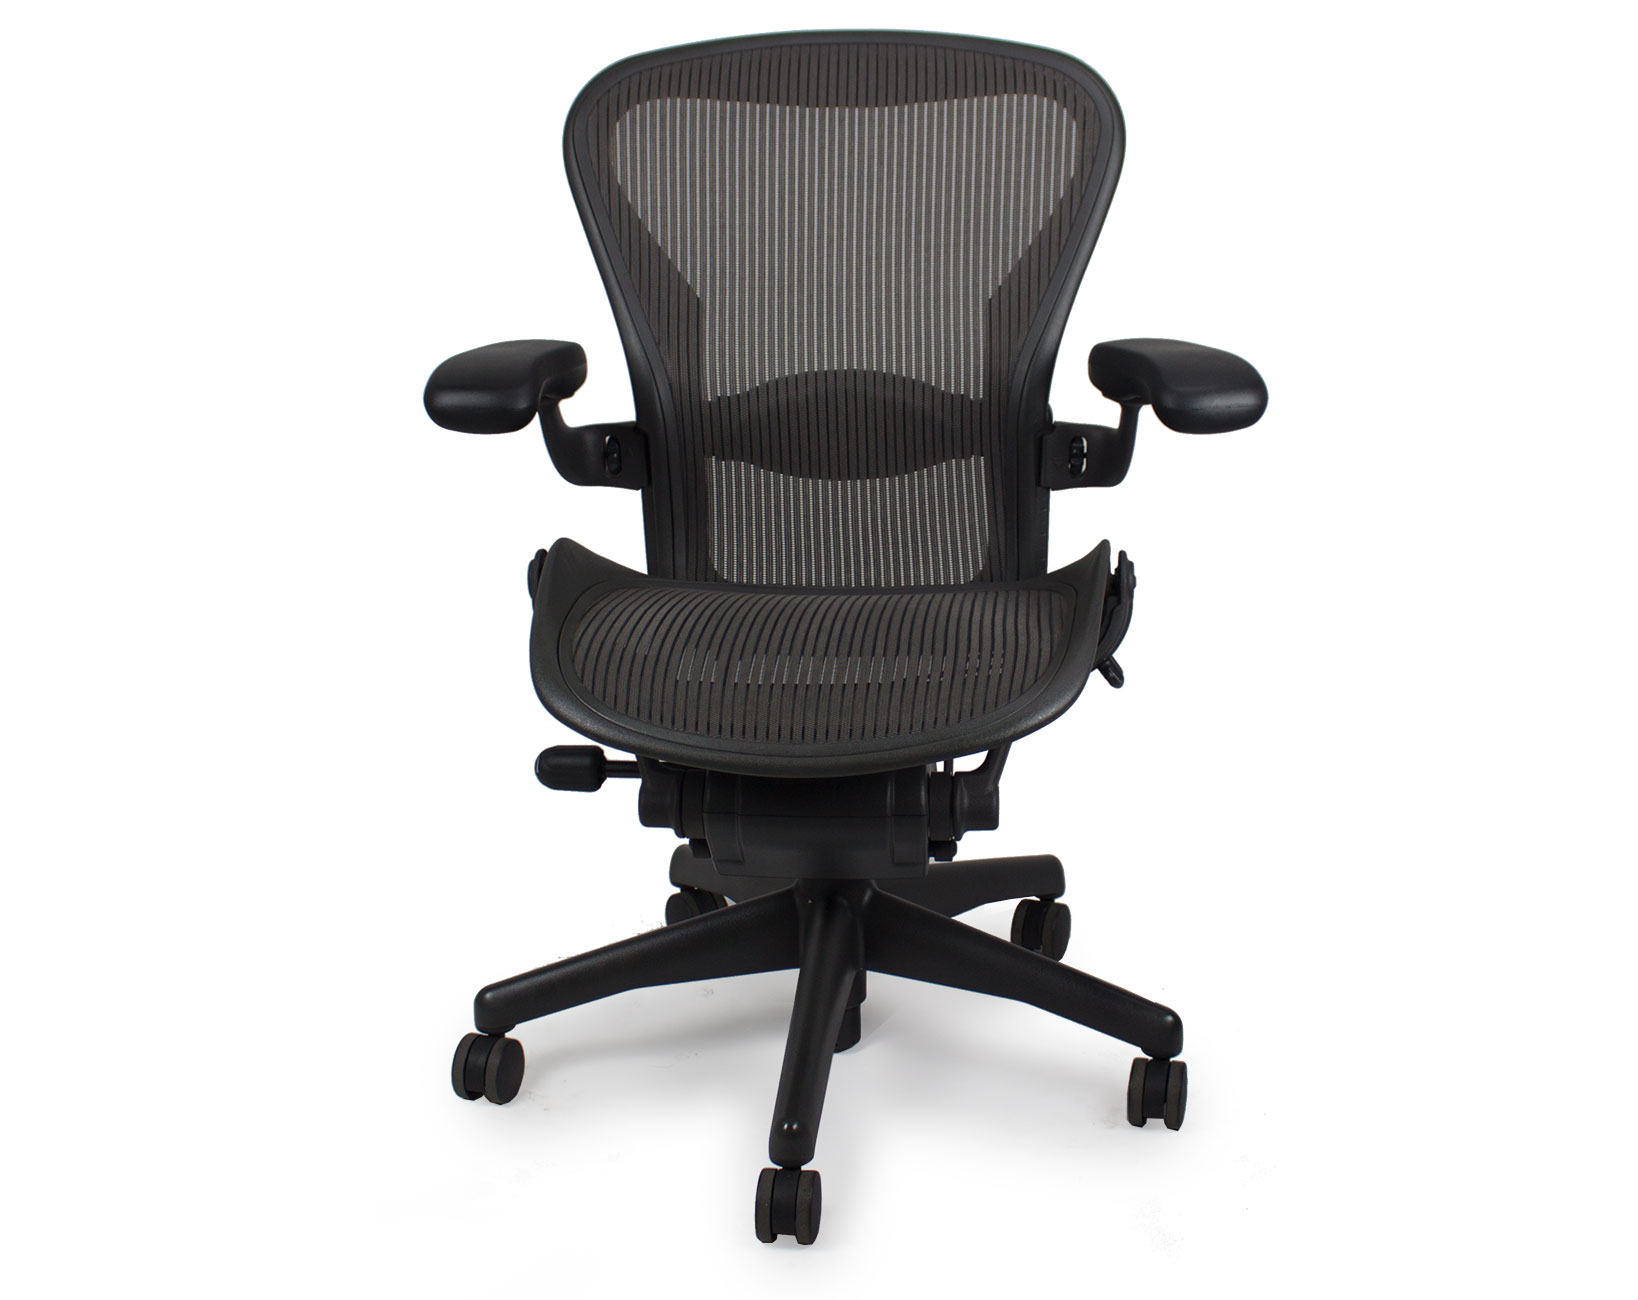 used herman miller aeron chair - graphite frame & classic carbon